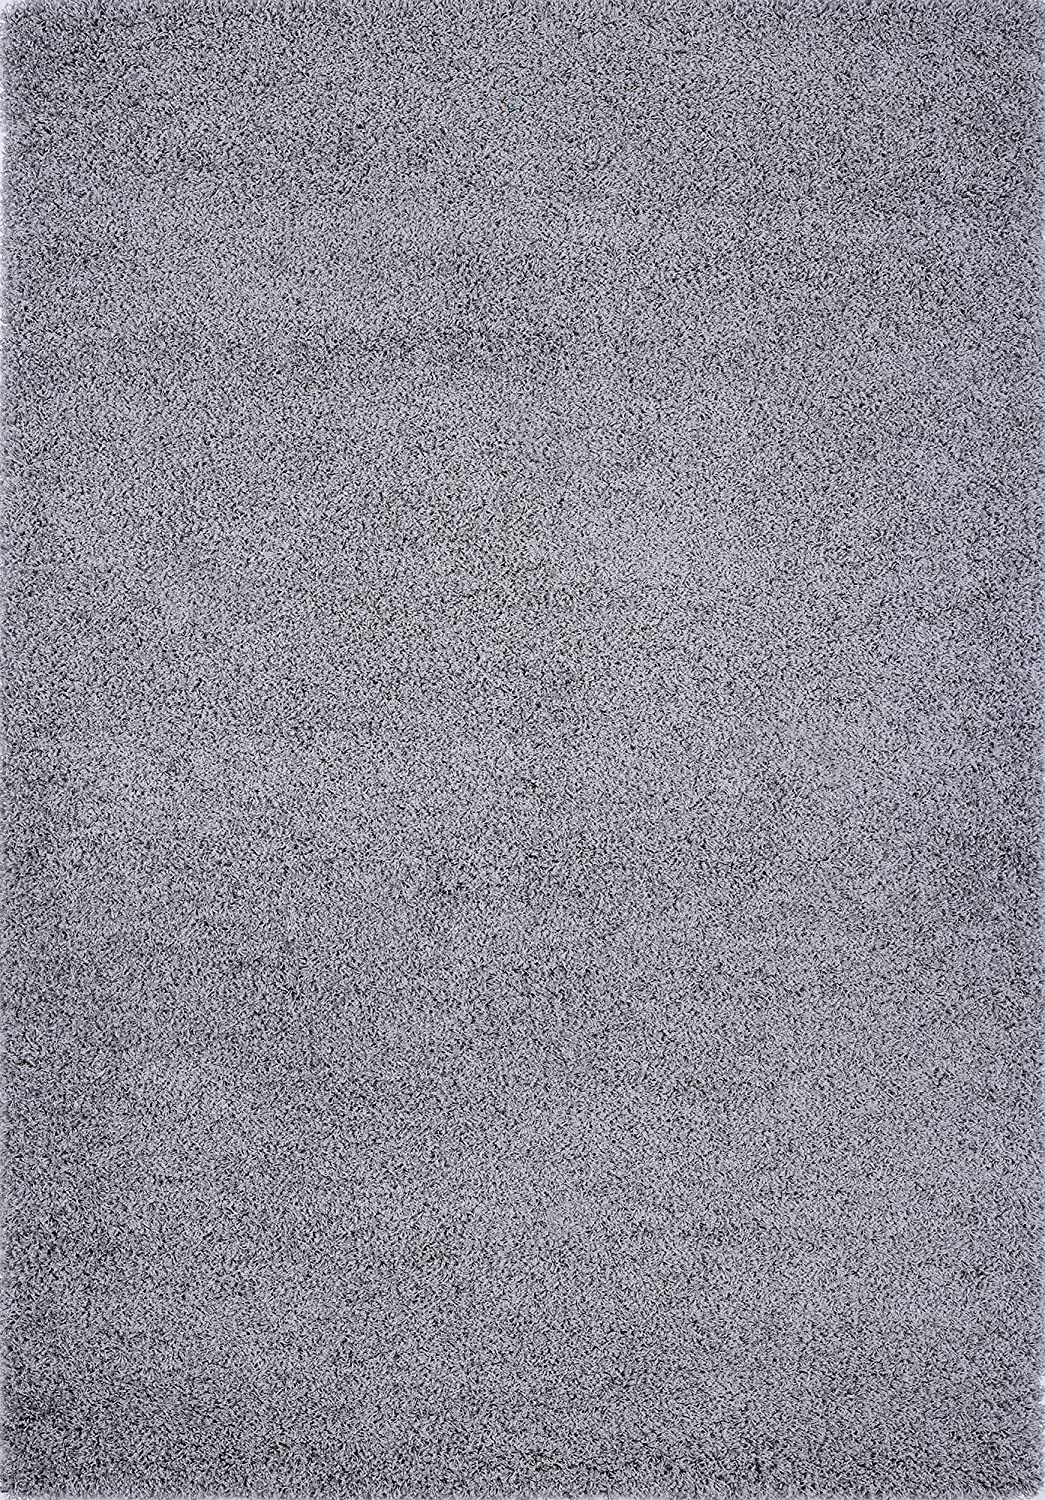 Pierre Cardin Luxury Shag/Flokati Collection Trellis Rug Design Abstract Area Rugs for Living Room Carpets (8' x 10', Gray)